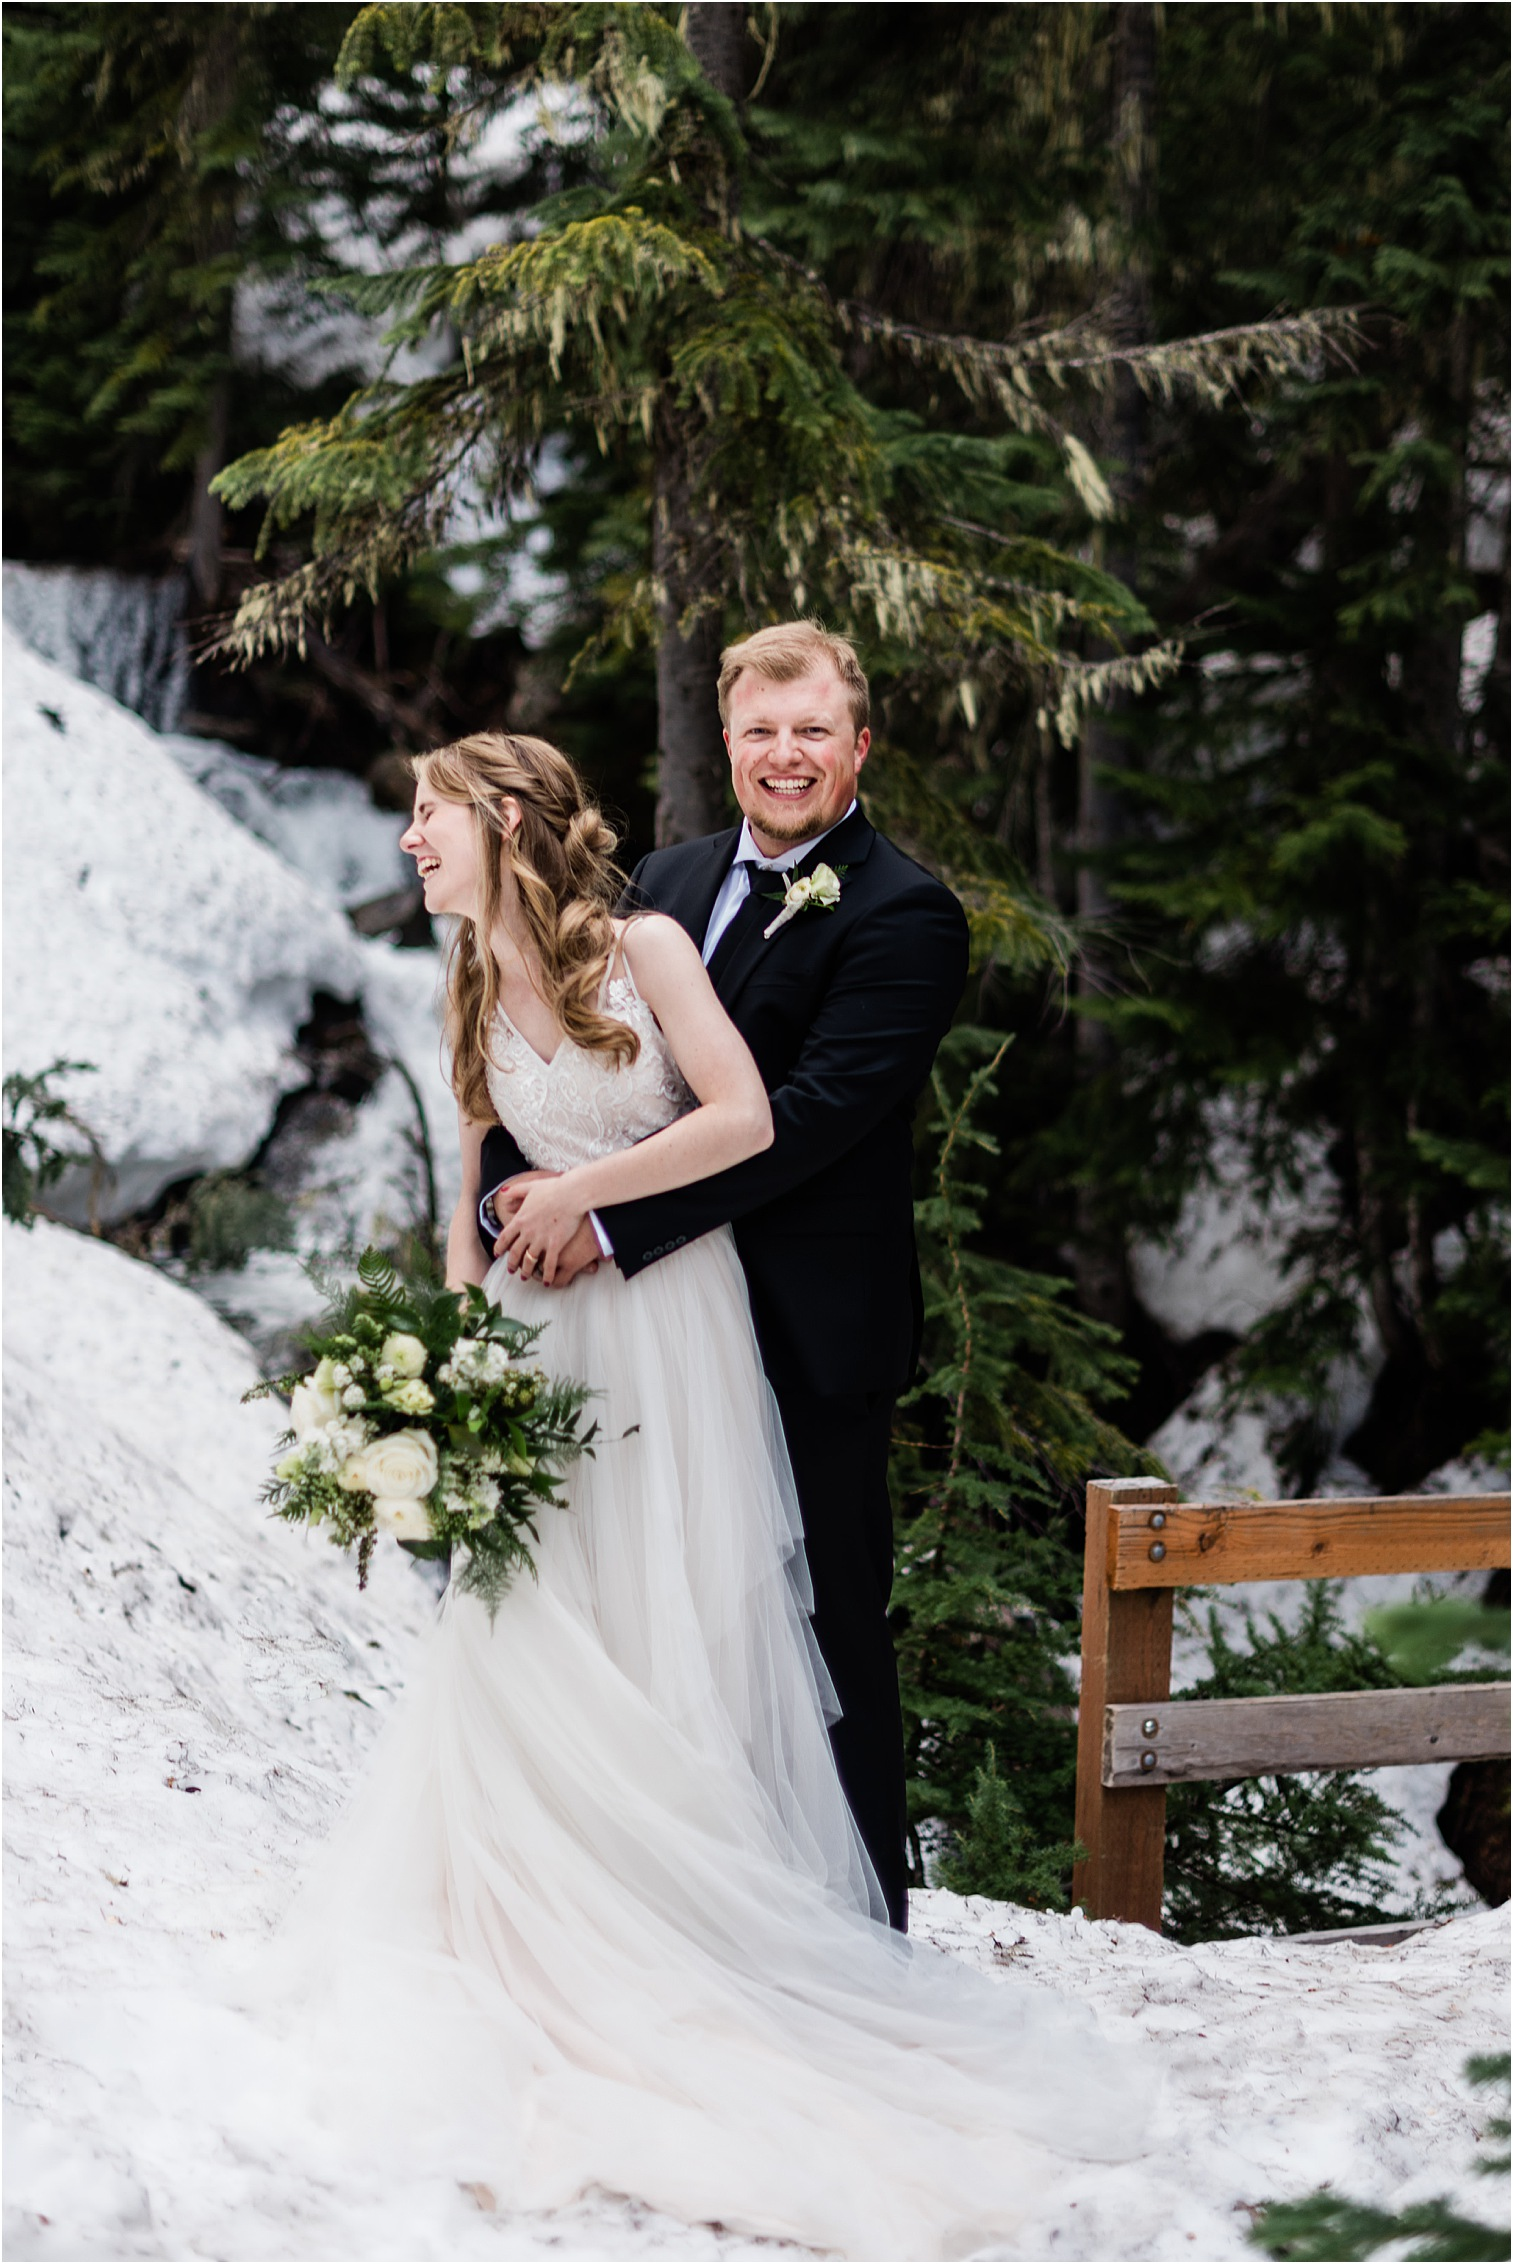 Hope & Steven laughing at a small waterfall bridge during their Adventure Wedding in the North Cascades. Image by Forthright Photo, Seattle Wedding & Elopement Photographers